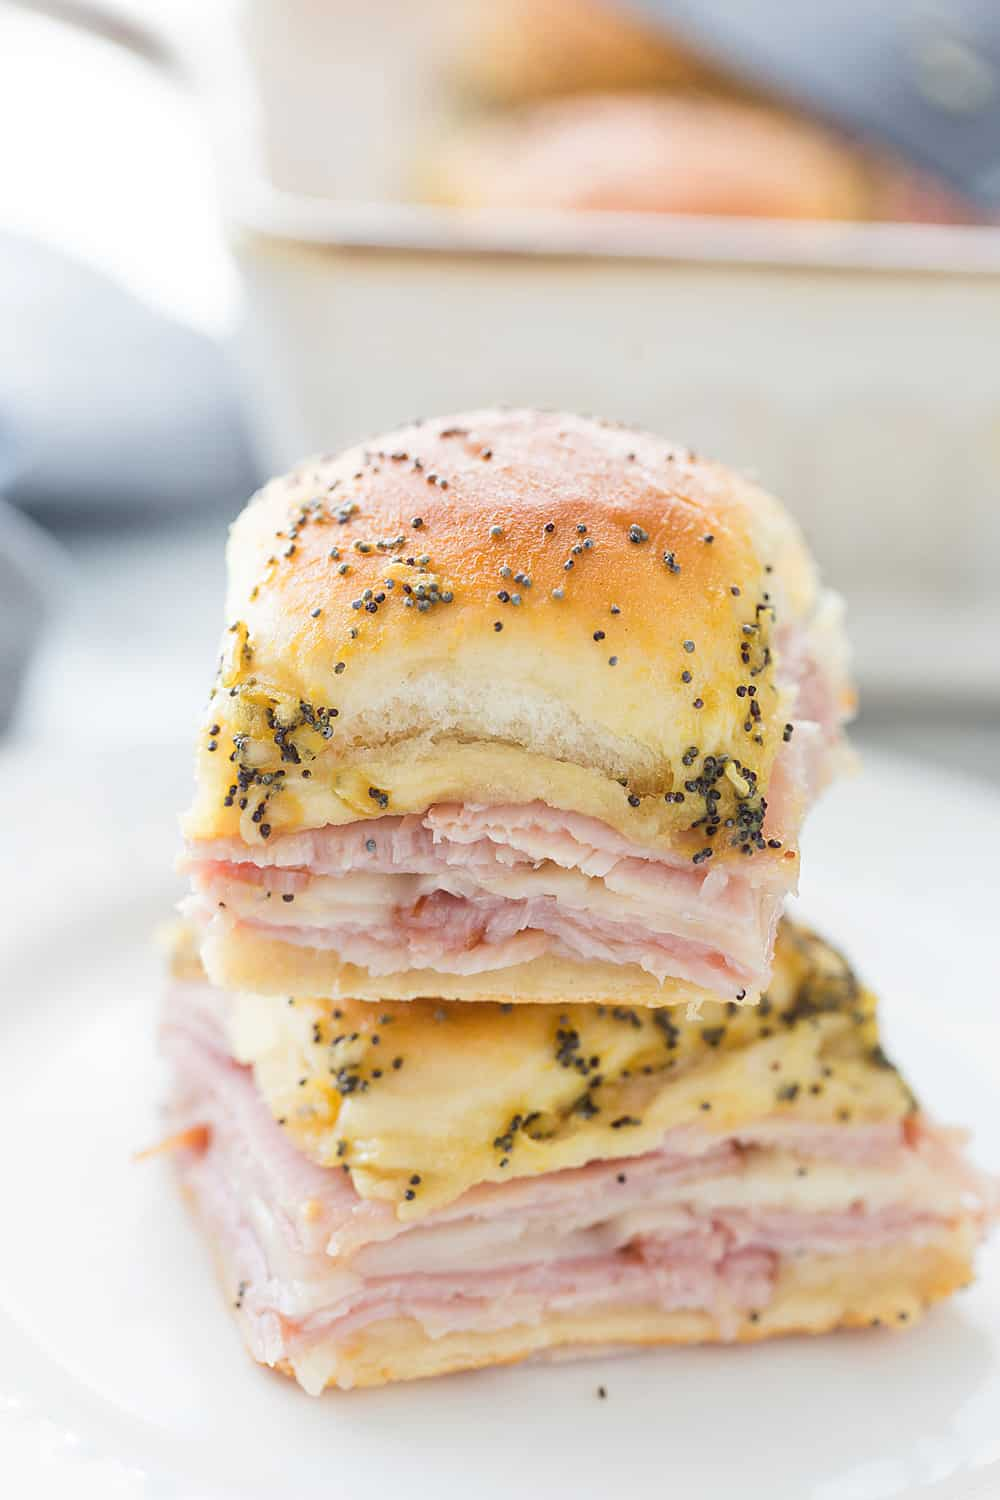 Hawaiian Ham & Cheese Sliders - Need a tasty way to use leftover ham or a recipe that'll feed a crowd? Look no further than Hawaiian ham and cheese sliders! #sliders #leftoverham #easyrecipe #hamandcheesesliders #maindish #baking #partyrecipe #holidayrecipe #halfscratched